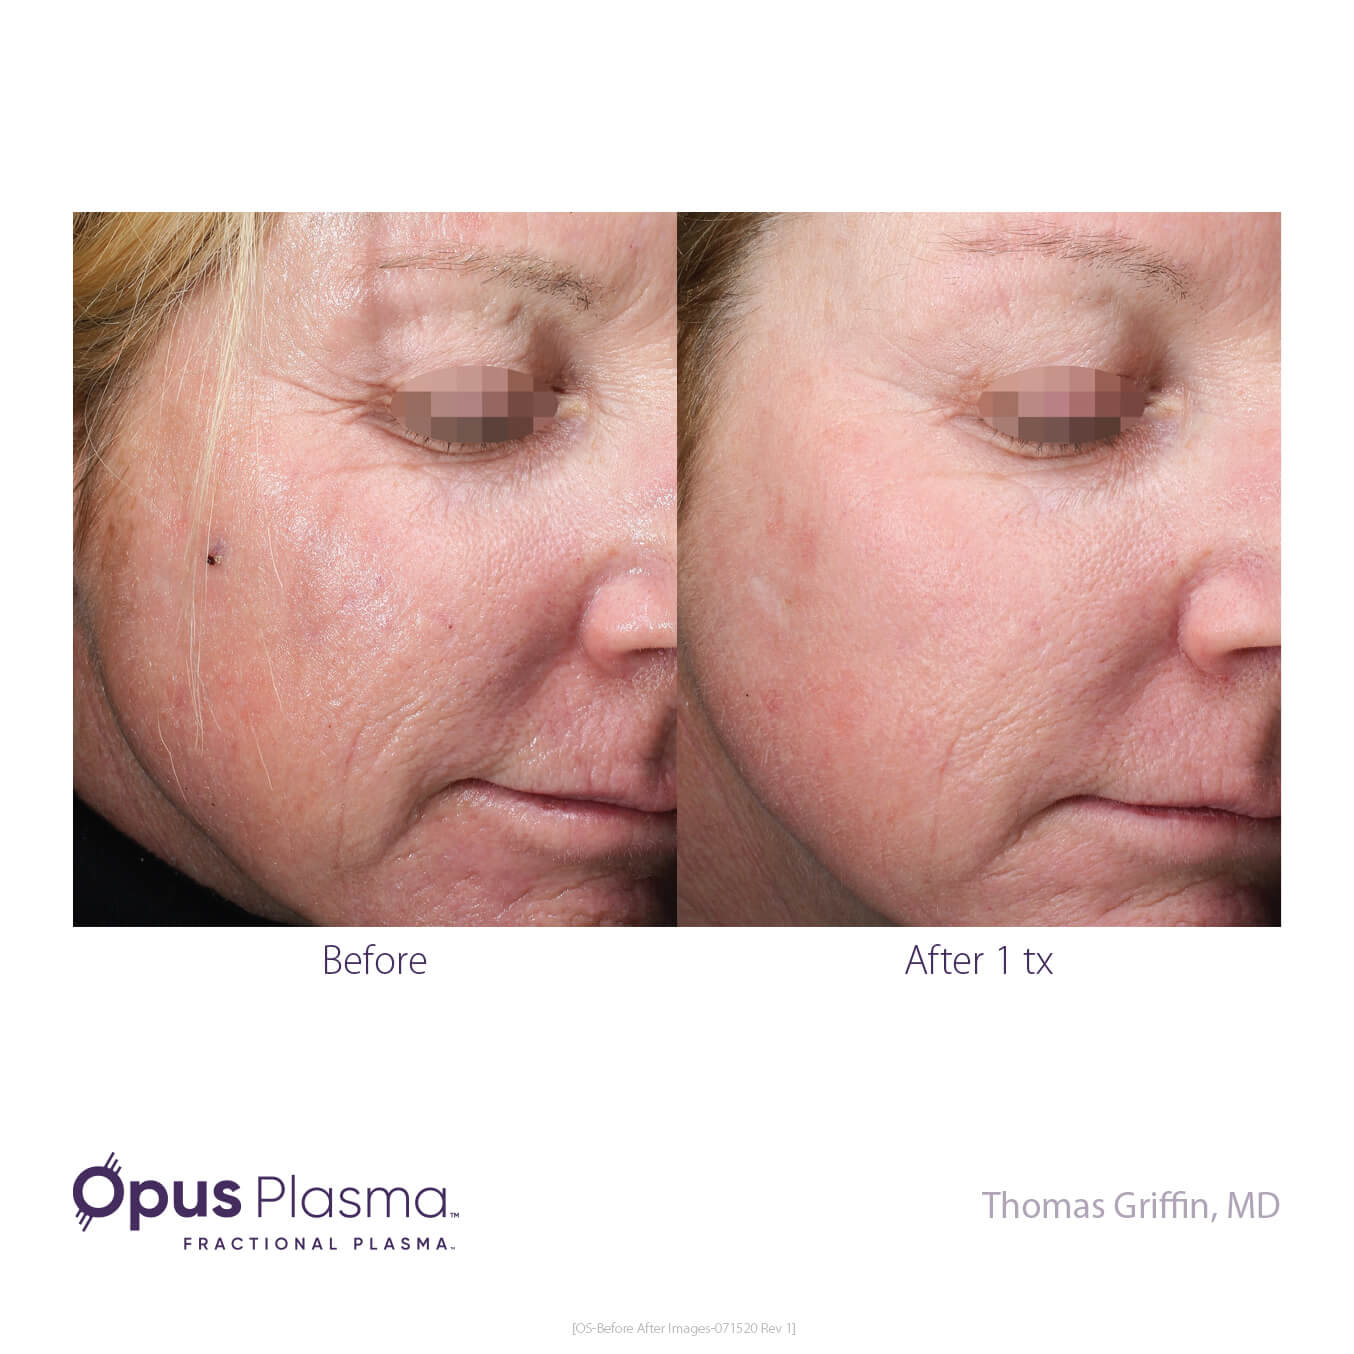 Opus-Before_and_After-B2C-11